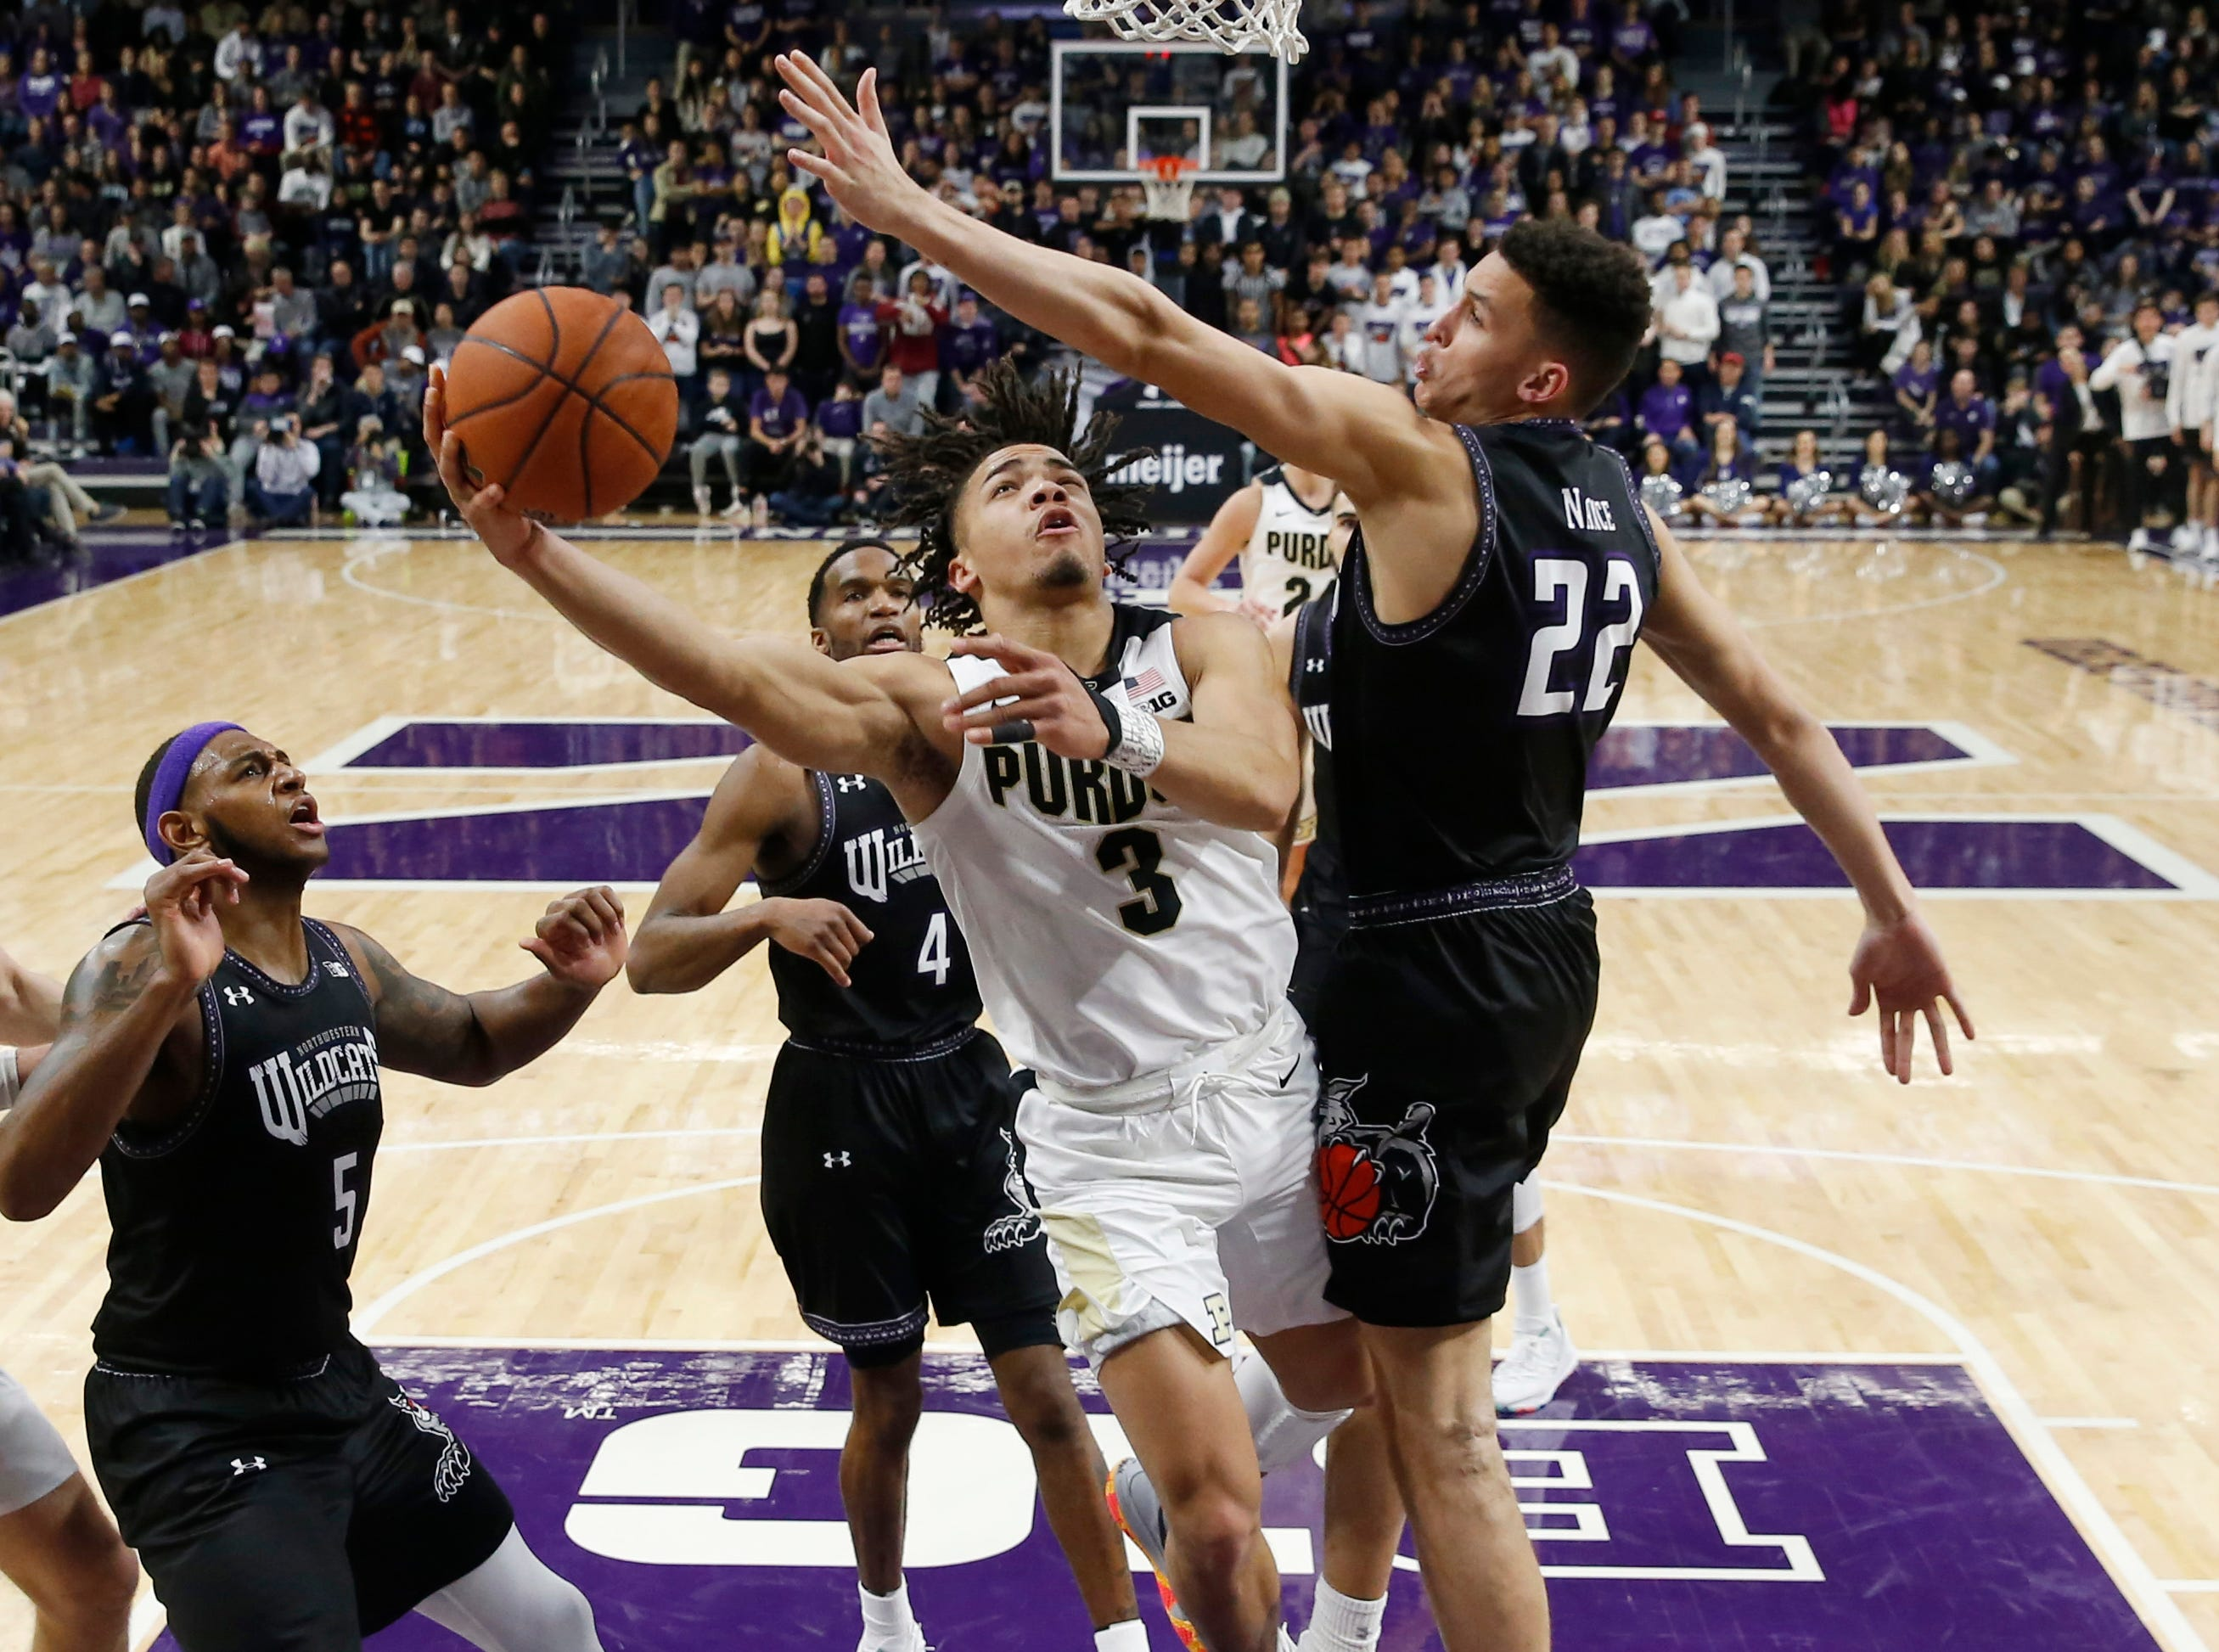 Mar 9, 2019; Evanston, IL, USA; Purdue Boilermakers guard Carsen Edwards (3) drives to the basket against Northwestern Wildcats forward Pete Nance (22) during the second half at Welsh-Ryan Arena. Mandatory Credit: Nuccio DiNuzzo-USA TODAY Sports